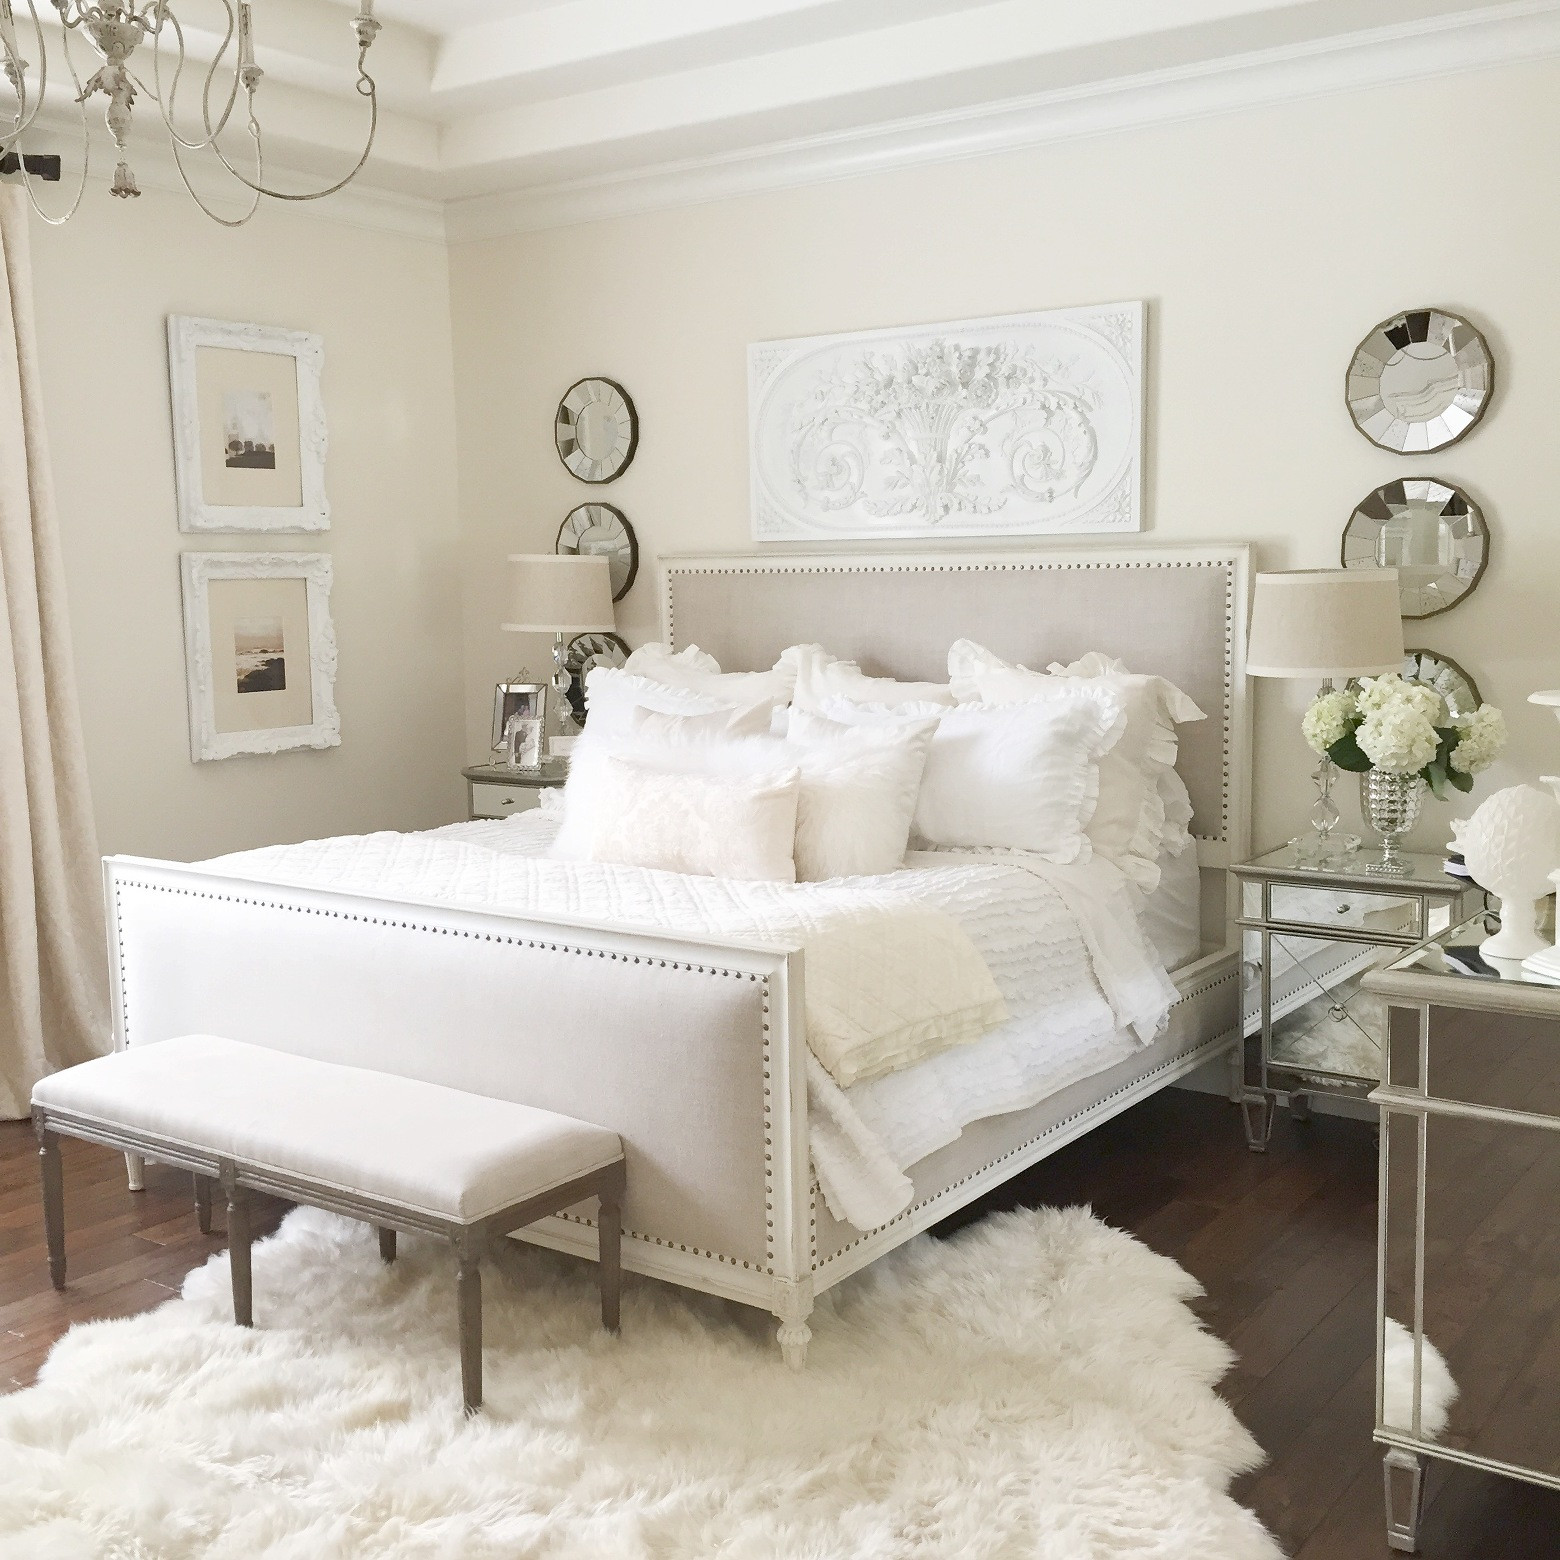 Best ideas about White Queen Bedroom Set . Save or Pin 15 Top White Bedroom Furniture Might Be Suitable for Your Now.